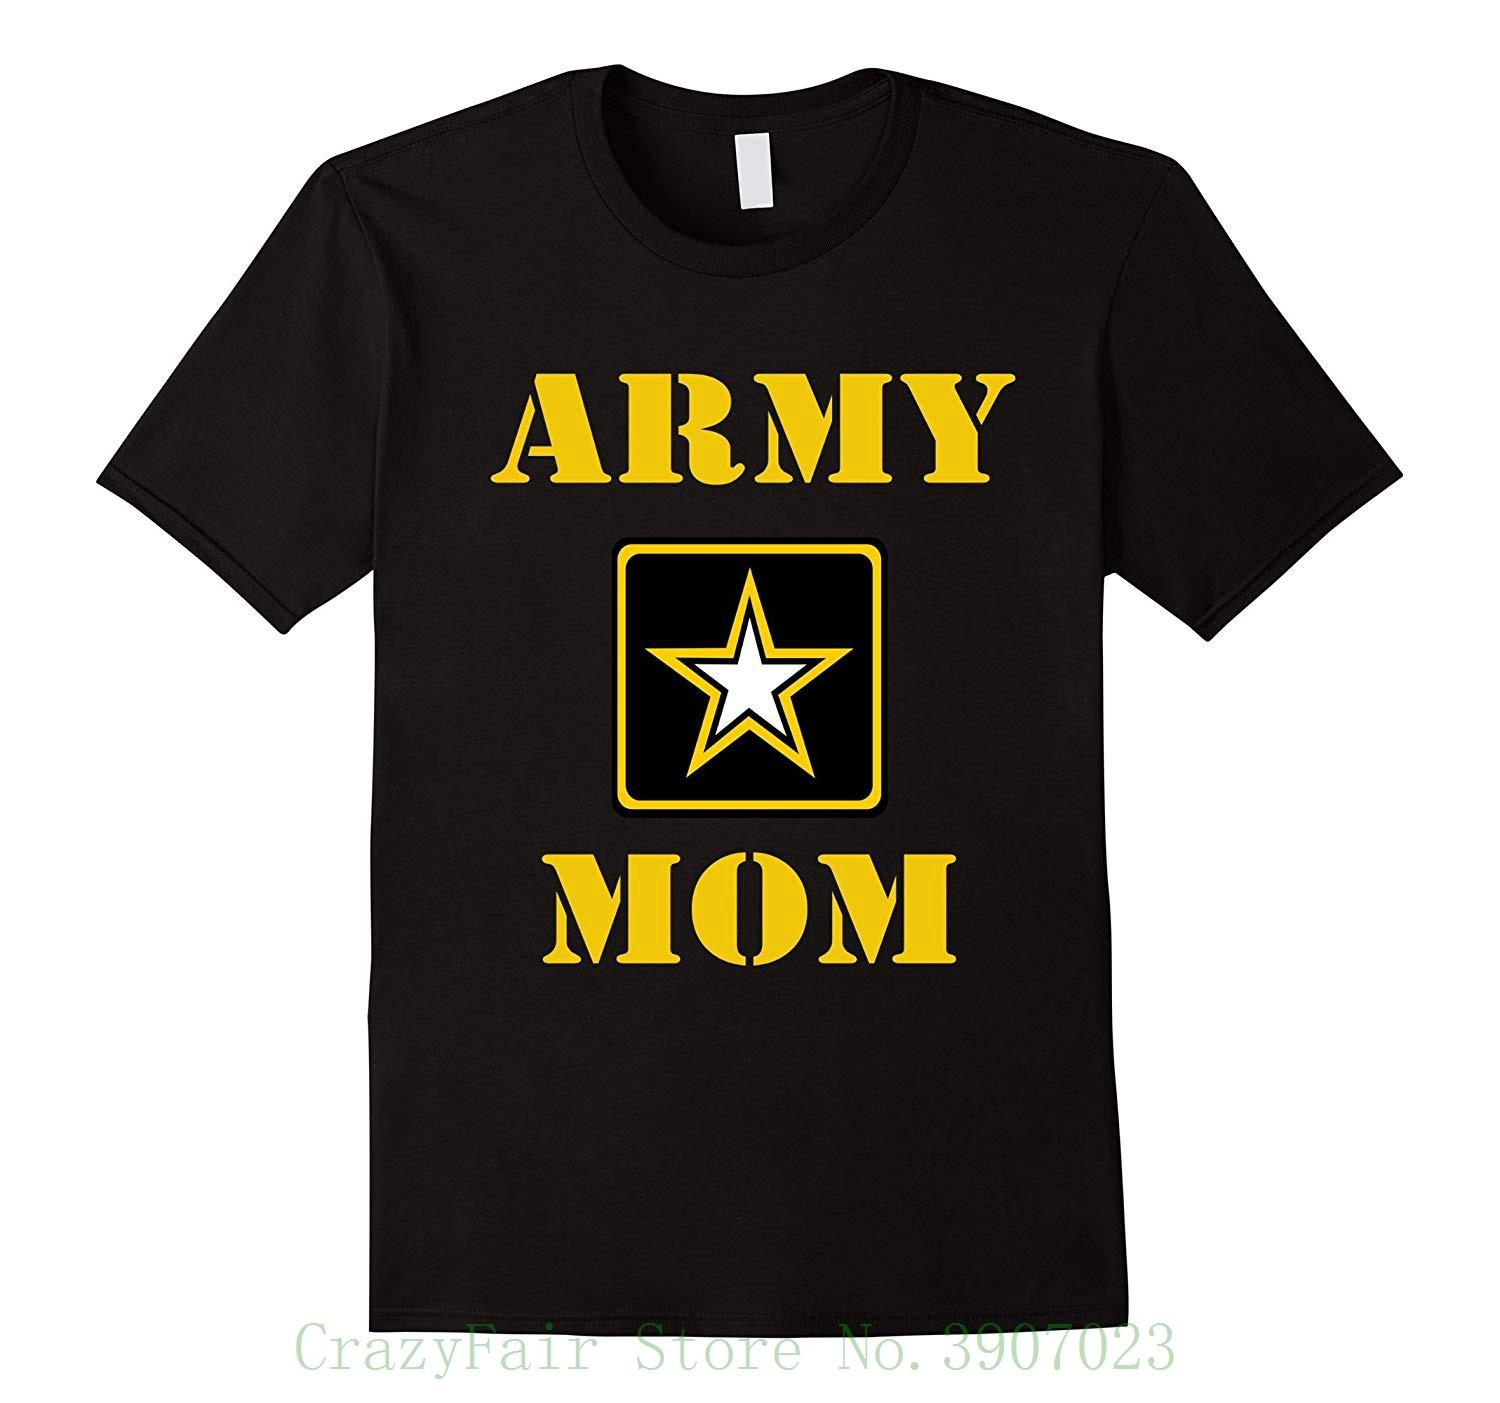 0fb6f8f9e7 U.S. Army Proud Mom Army T Shirt Tshirt Men Black Short Sleeve Cotton Hip  Hop T Shirt Print Tee Shirts Printing On T Shirts Crazy T Shirts From ...